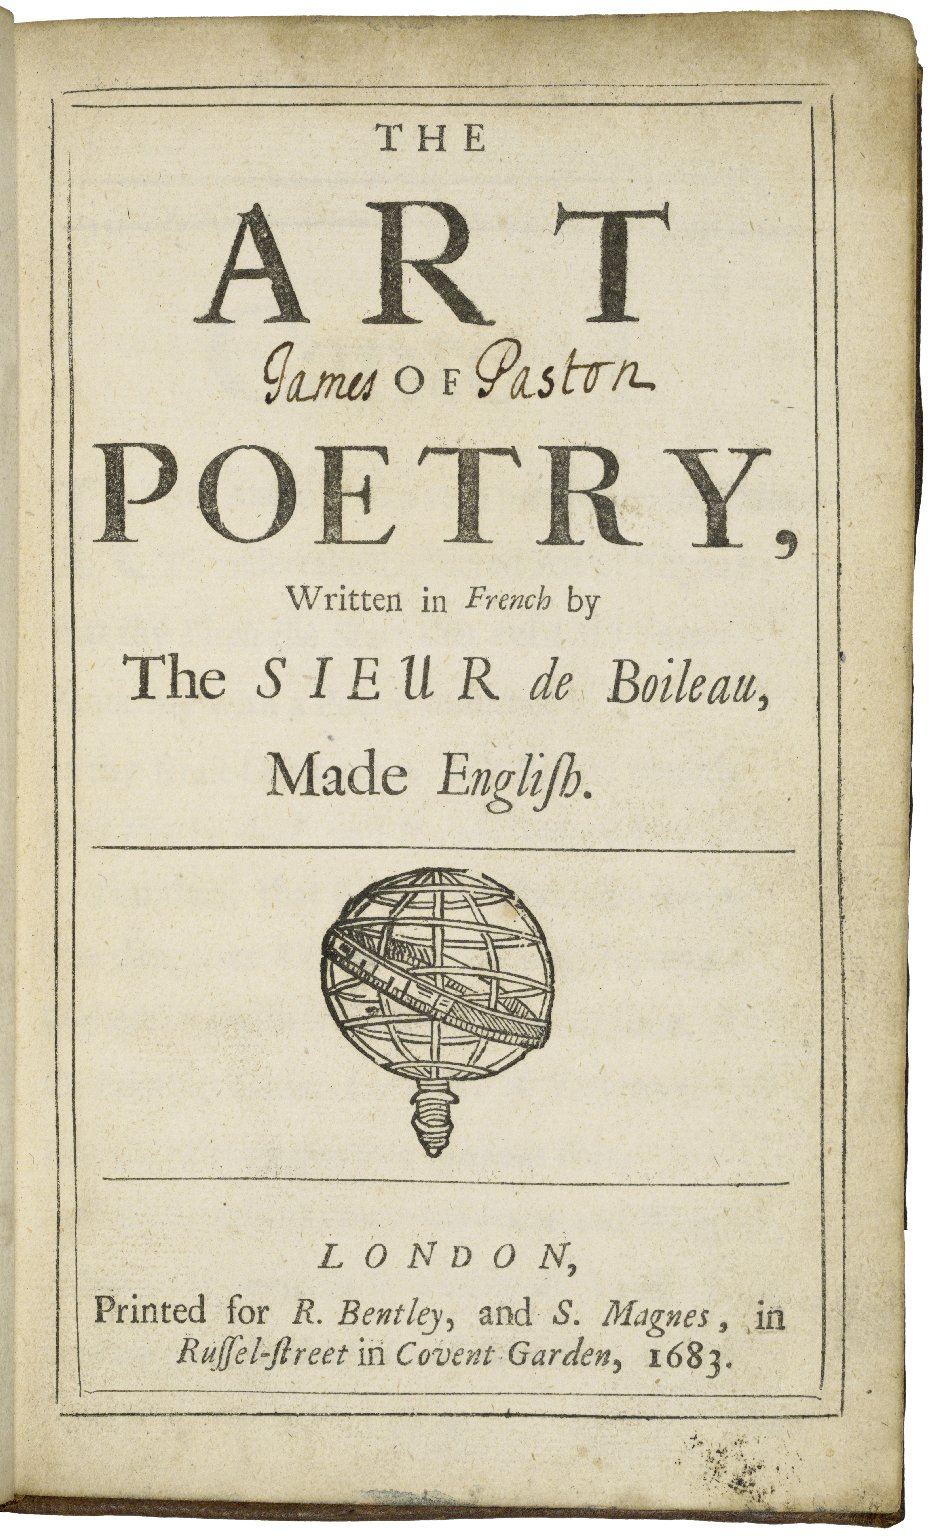 [Art poétique. English] The art of poetry, written in French by the Sieur de Boileau, made English.